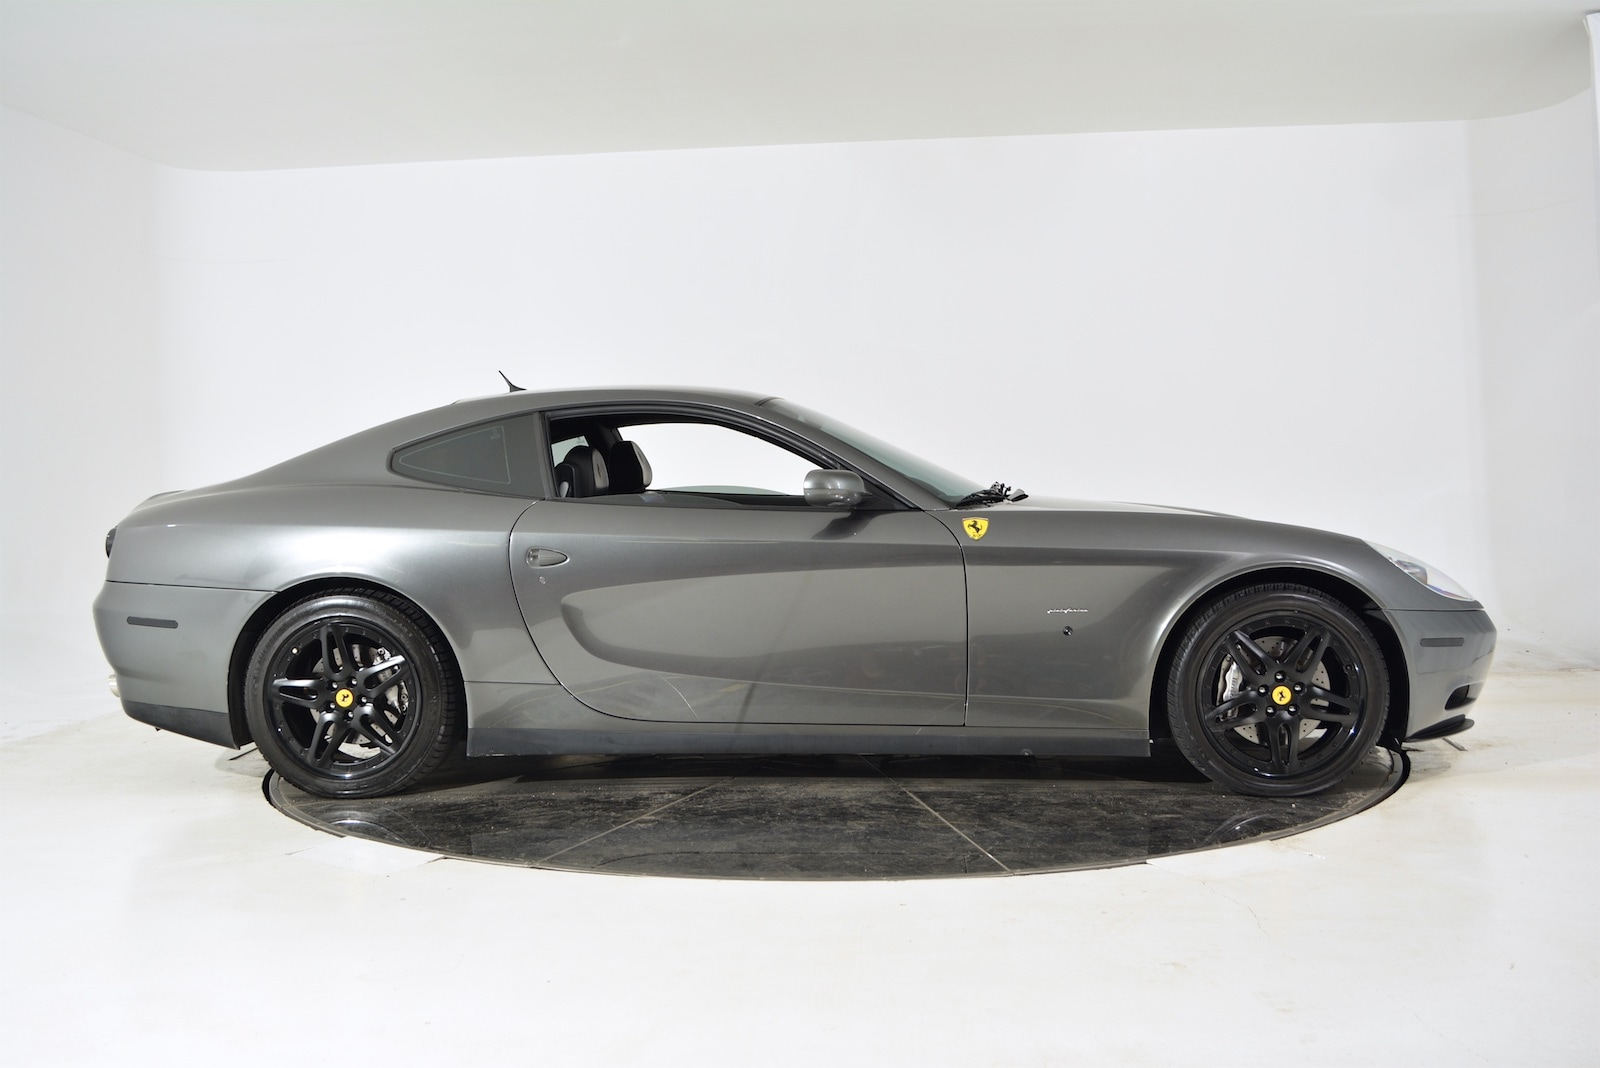 used 2006 ferrari 612 scaglietti f1 for sale fort lauderdale fl vin zffaa54a160147648. Black Bedroom Furniture Sets. Home Design Ideas